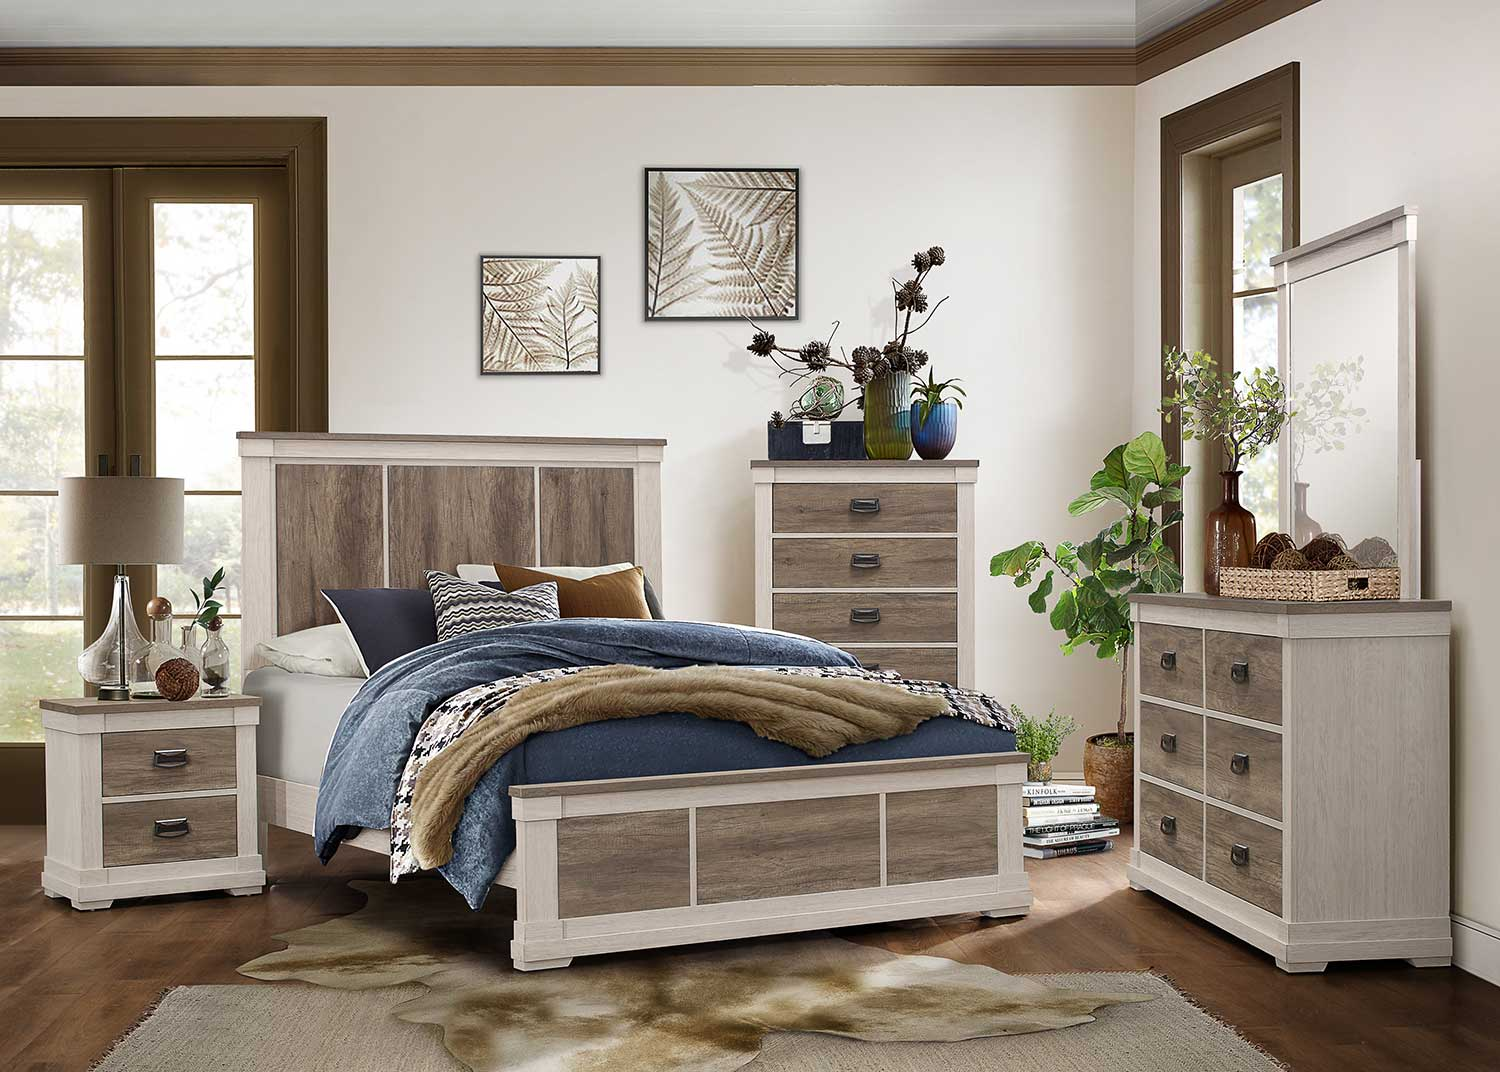 Homelegance Arcadia Bedroom Set - White Framing and Variegated Gray Printed Faux-Wood Grain Veneer